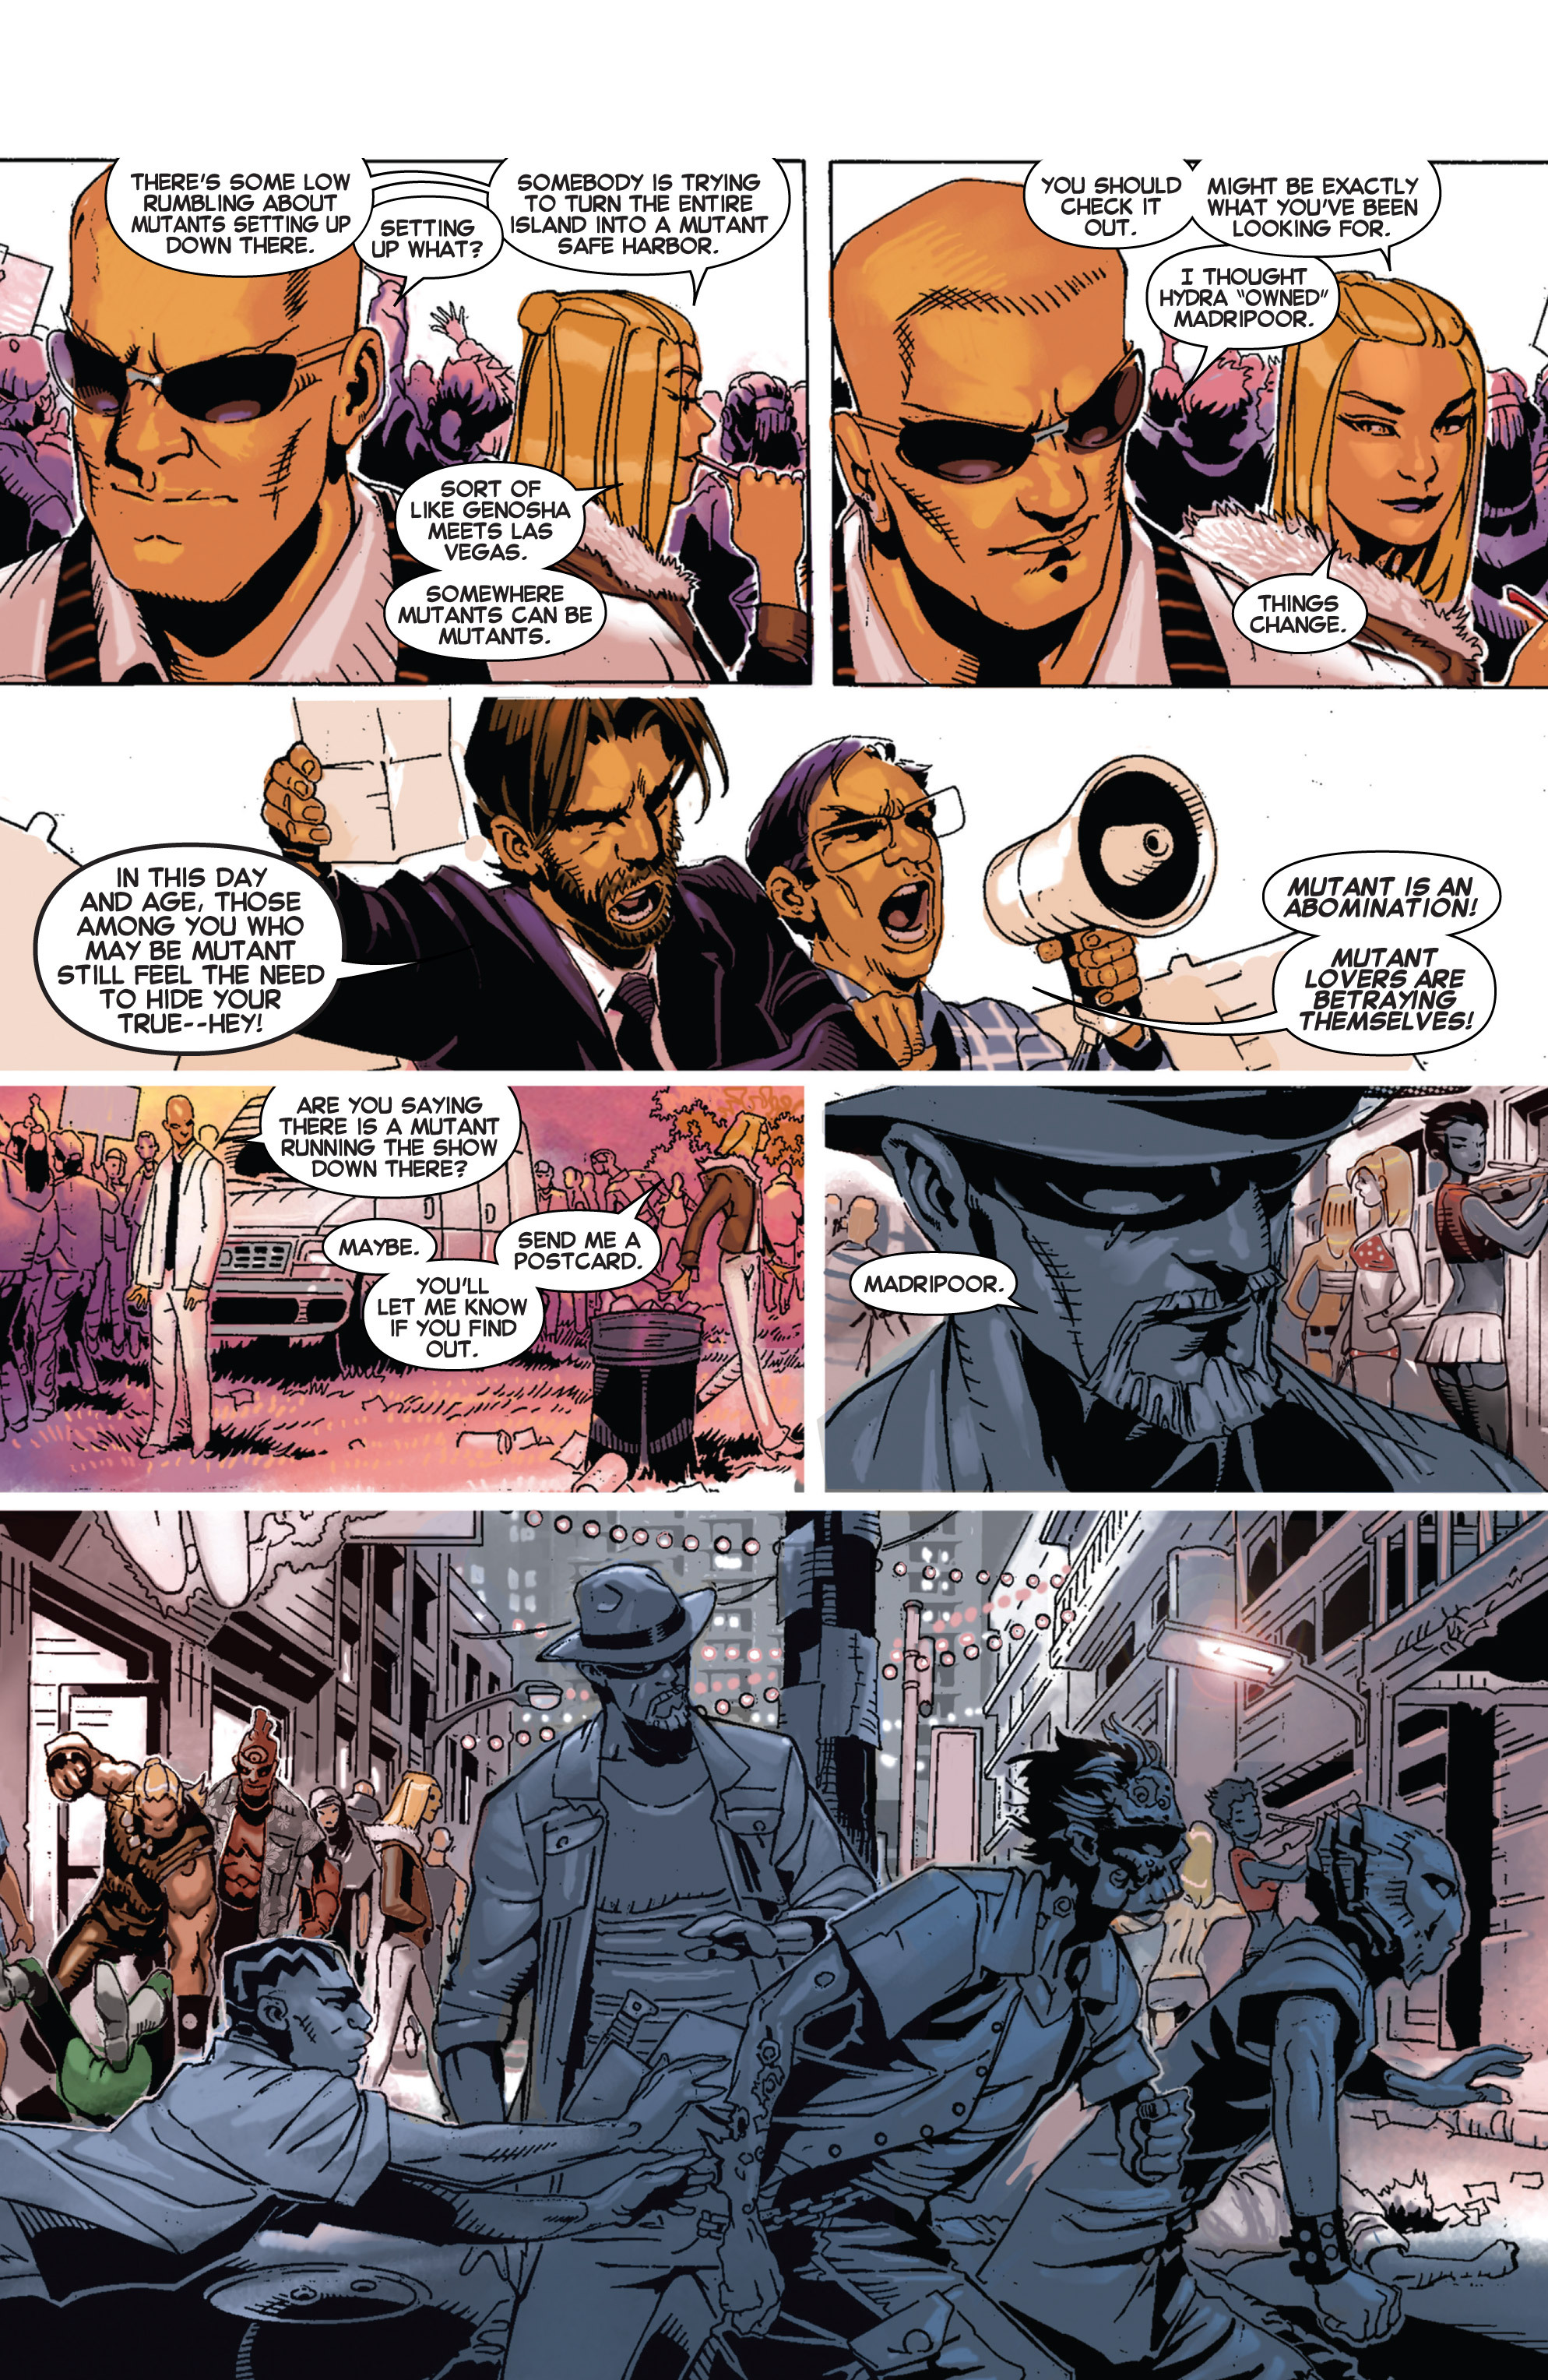 Read online Uncanny X-Men (2013) comic -  Issue # _TPB 3 - The Good, The Bad, The Inhuman - 50